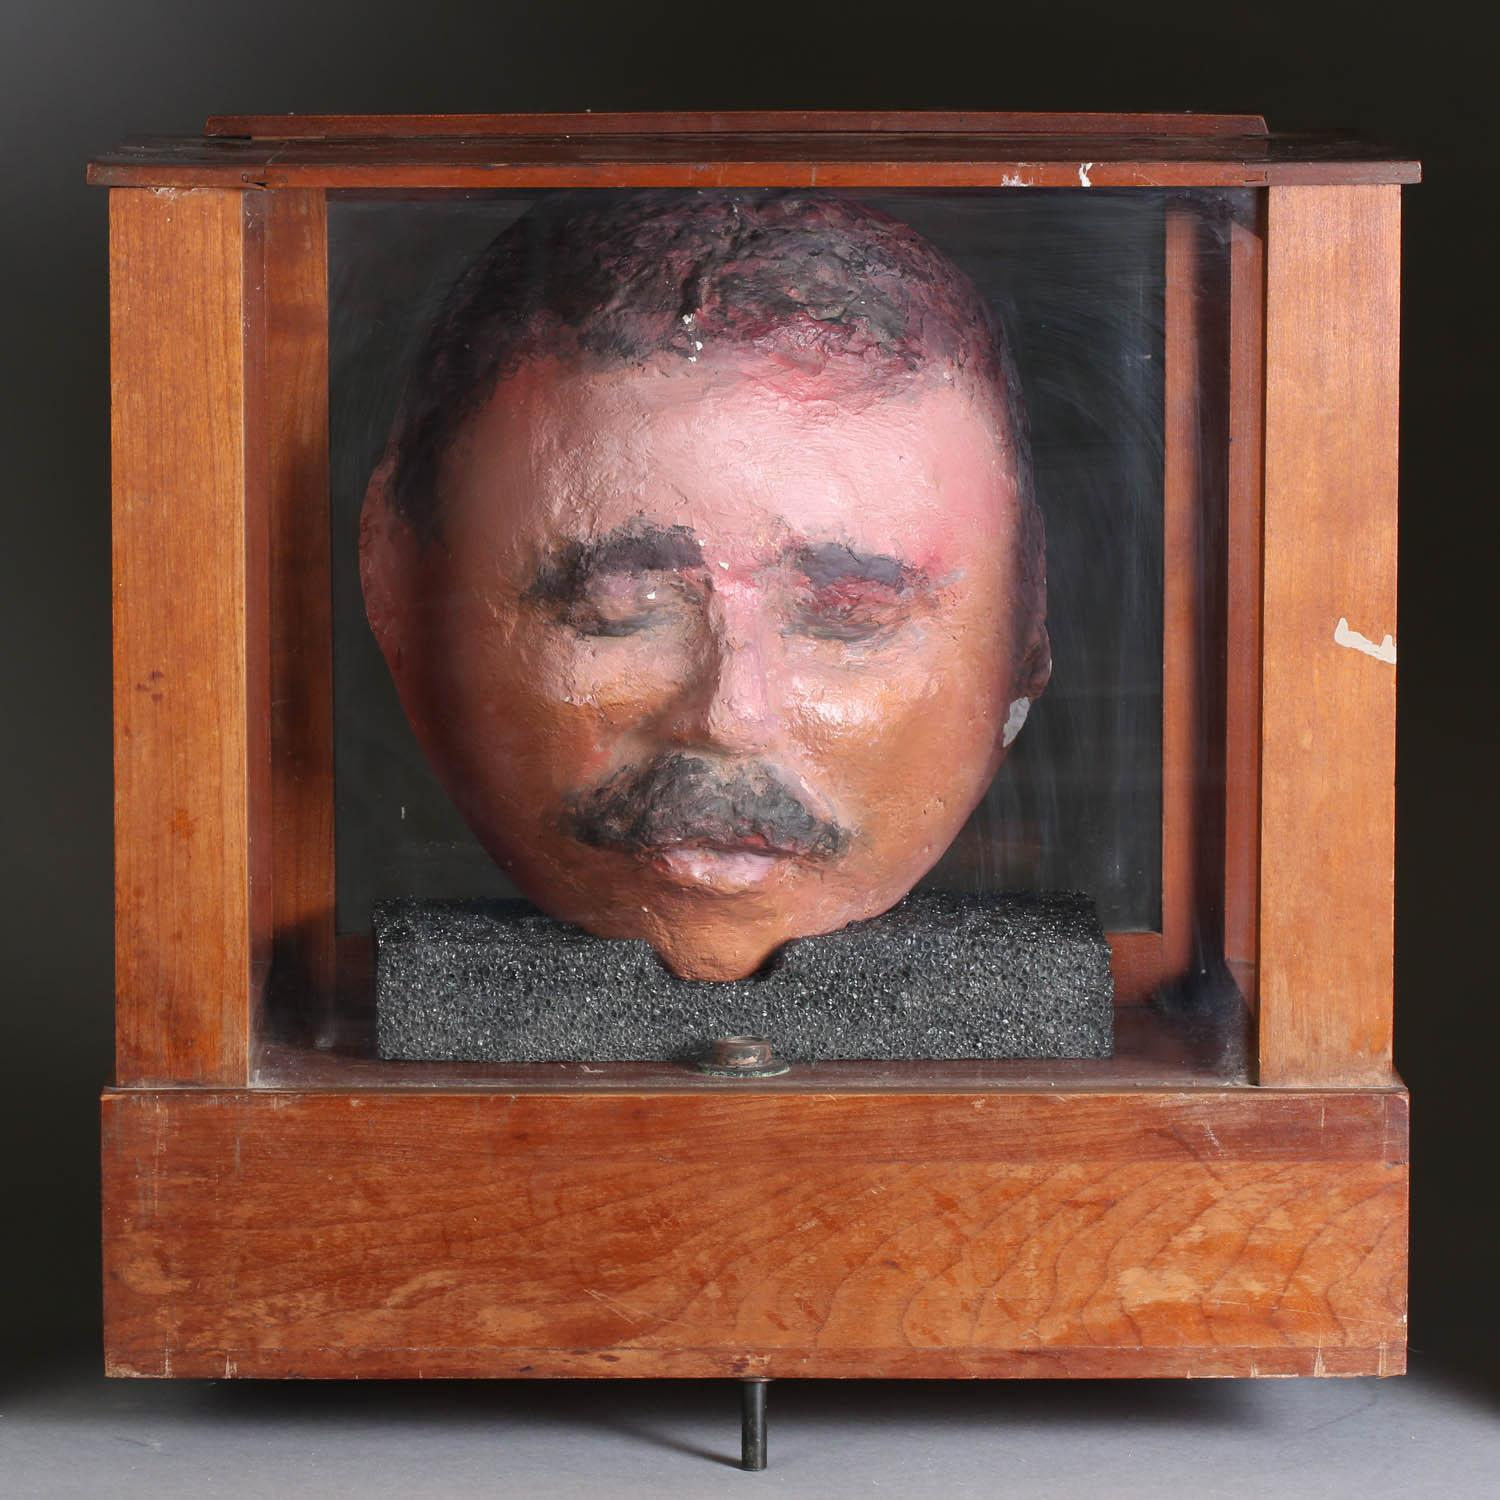 Pancho Villa Plaster Cast Death Mask and Display Case, Ca. 1984,New York Auction House, Houston Auction, Dallas Auction, San Antonio,